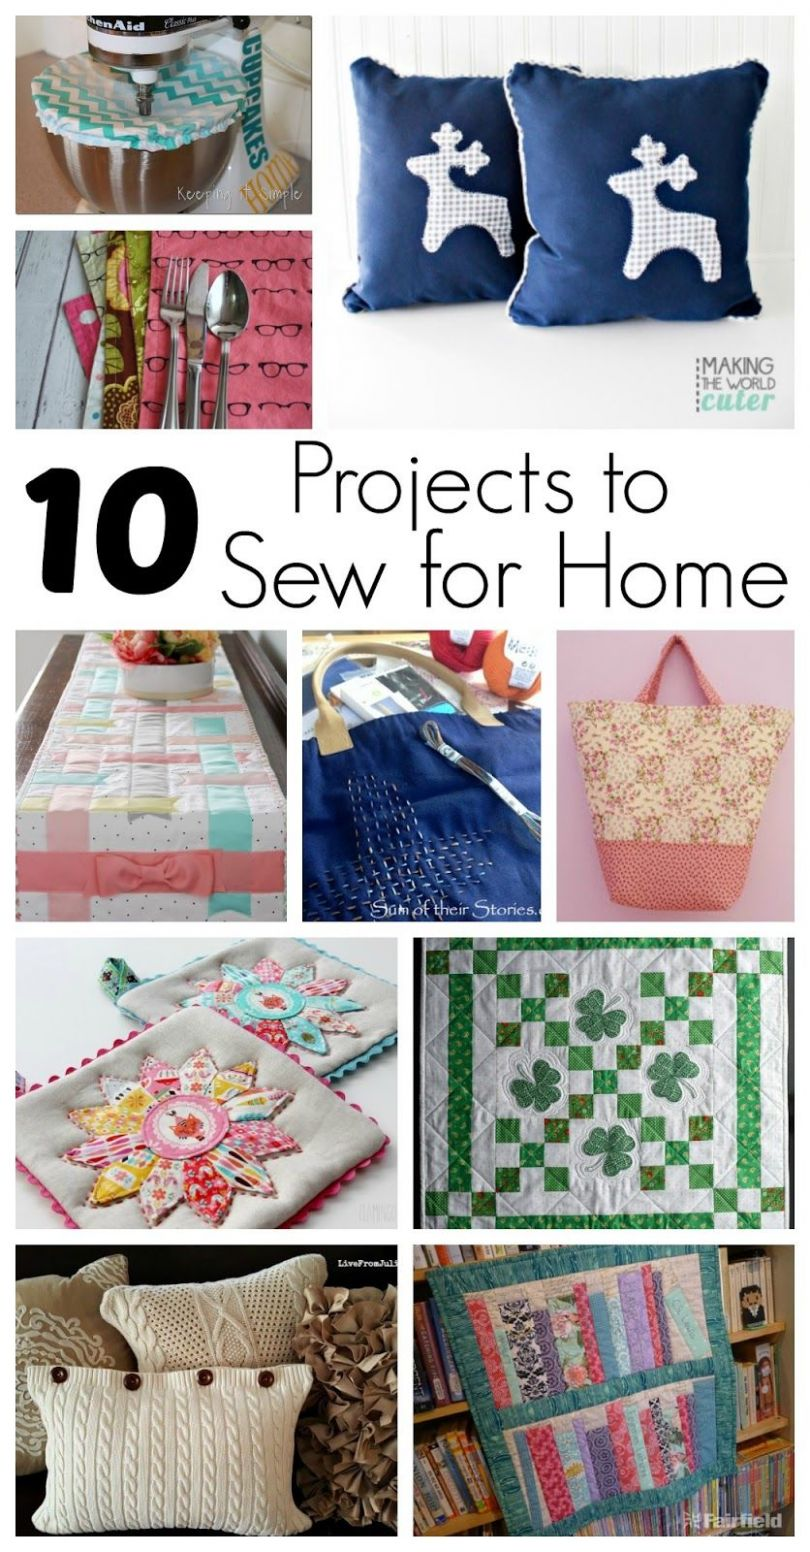 9 Projects to Sew for Home and Block Party | Sewing projects for ..